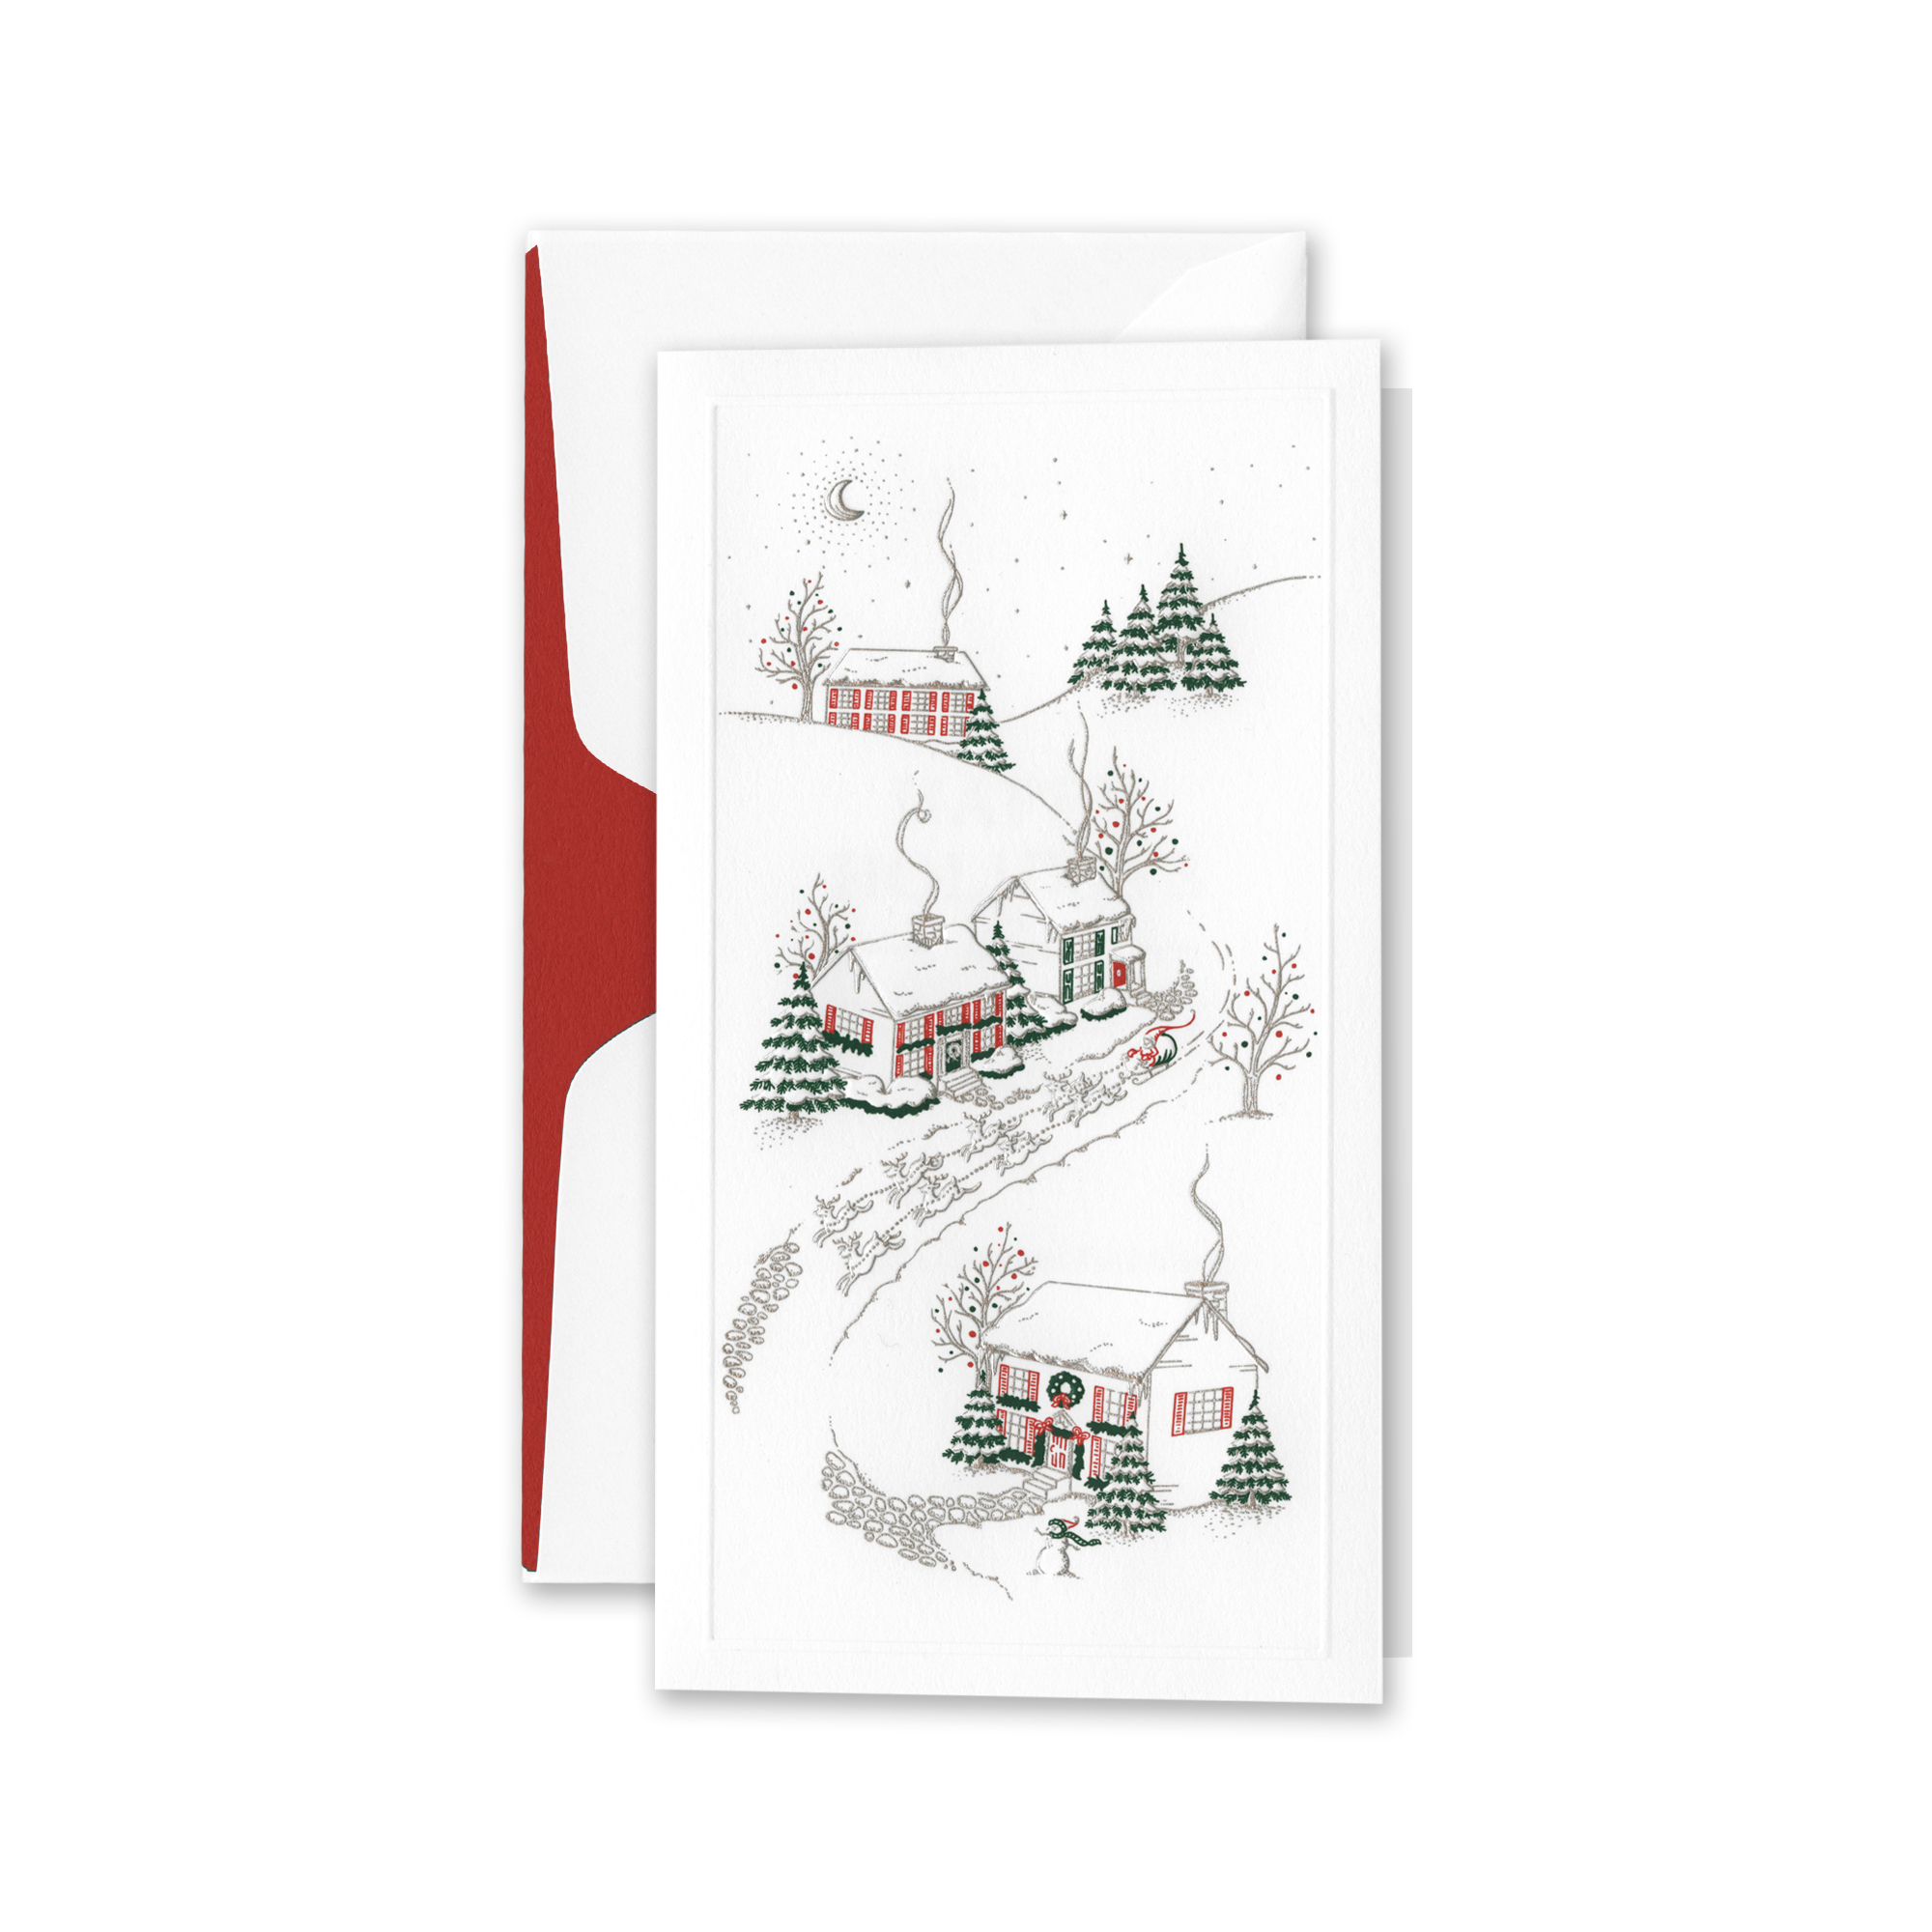 Crane & Co. Snowy Village Cards, Set of 10